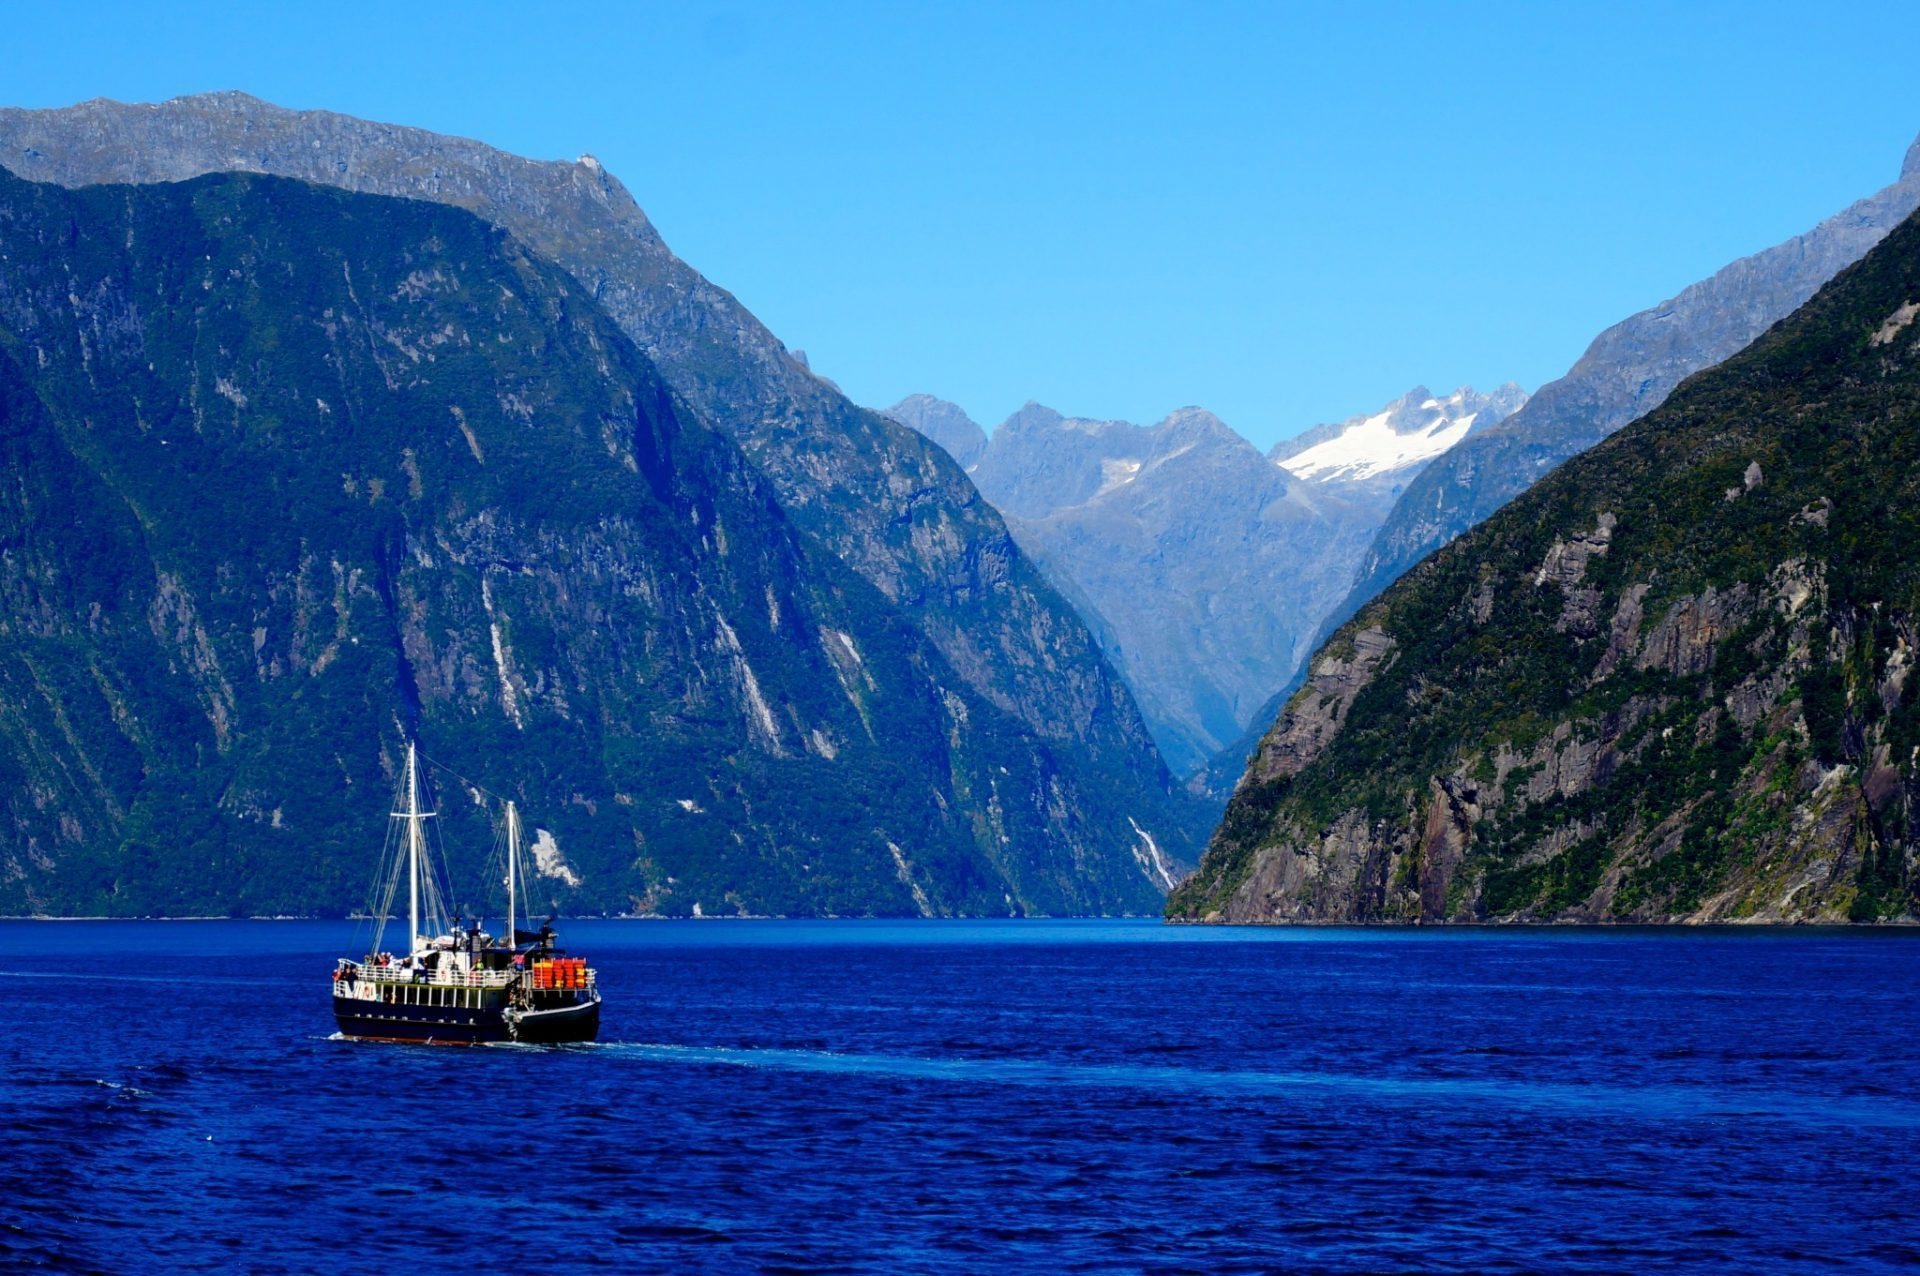 Is Milford Sound Worth It Tips Everything You Need To Know To Decide - Milford cruise in car show